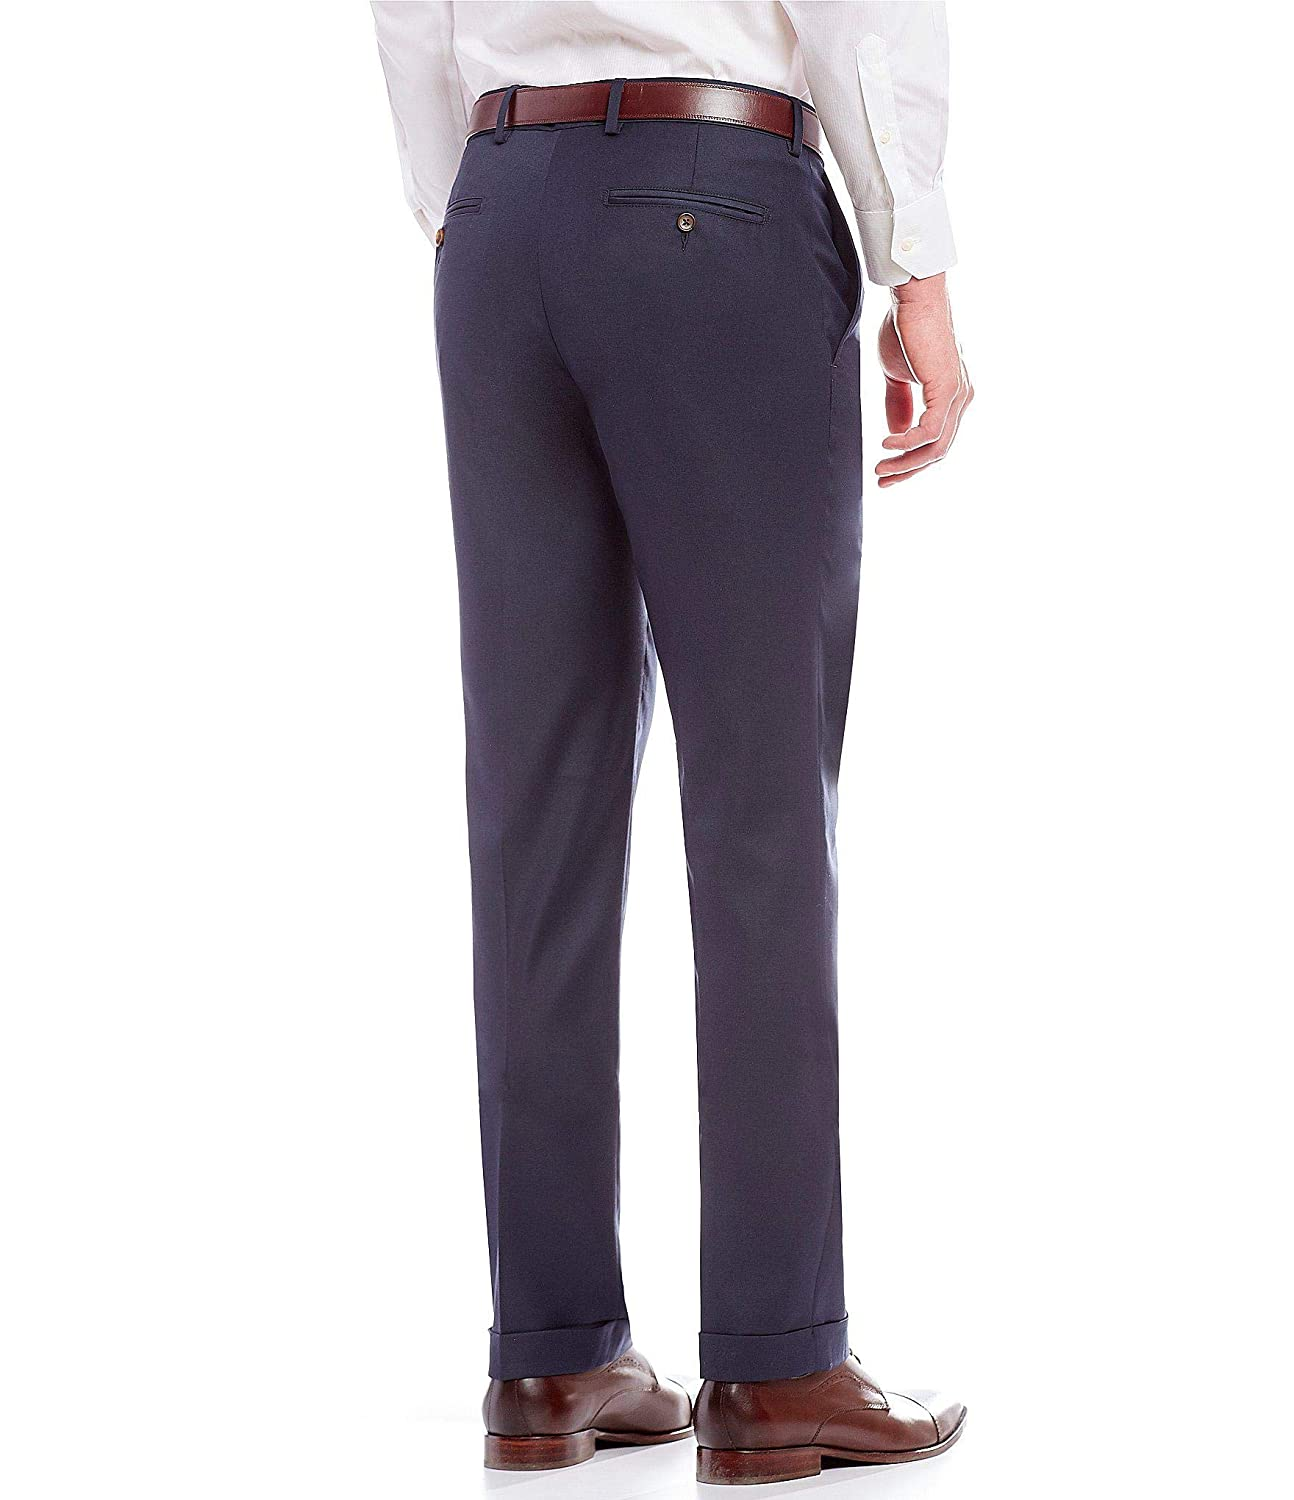 Cremieux Mens Milan Classic Fit Single Pleated Pants S85PX402 Navy Heather